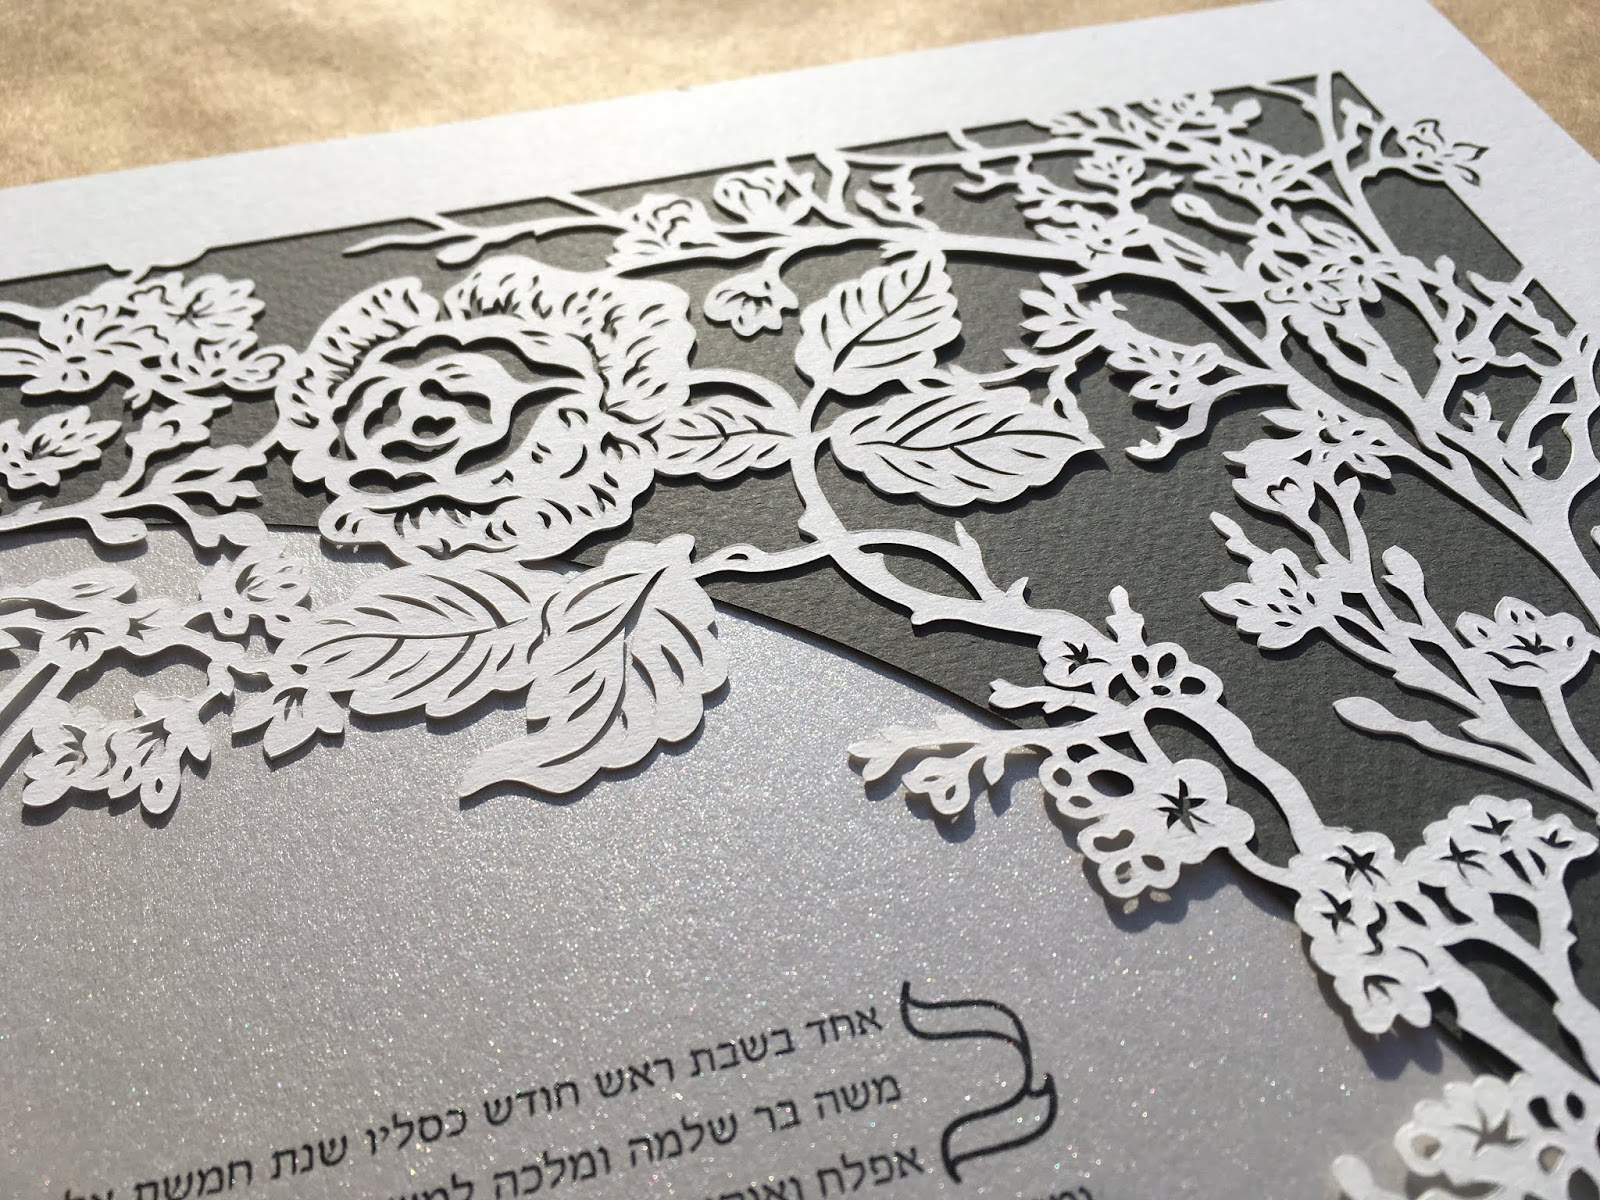 Handmade papercut by Naomi Shiek features delicate flowers and blooms such as Cherry Blossom branches, Roses, and Daisies